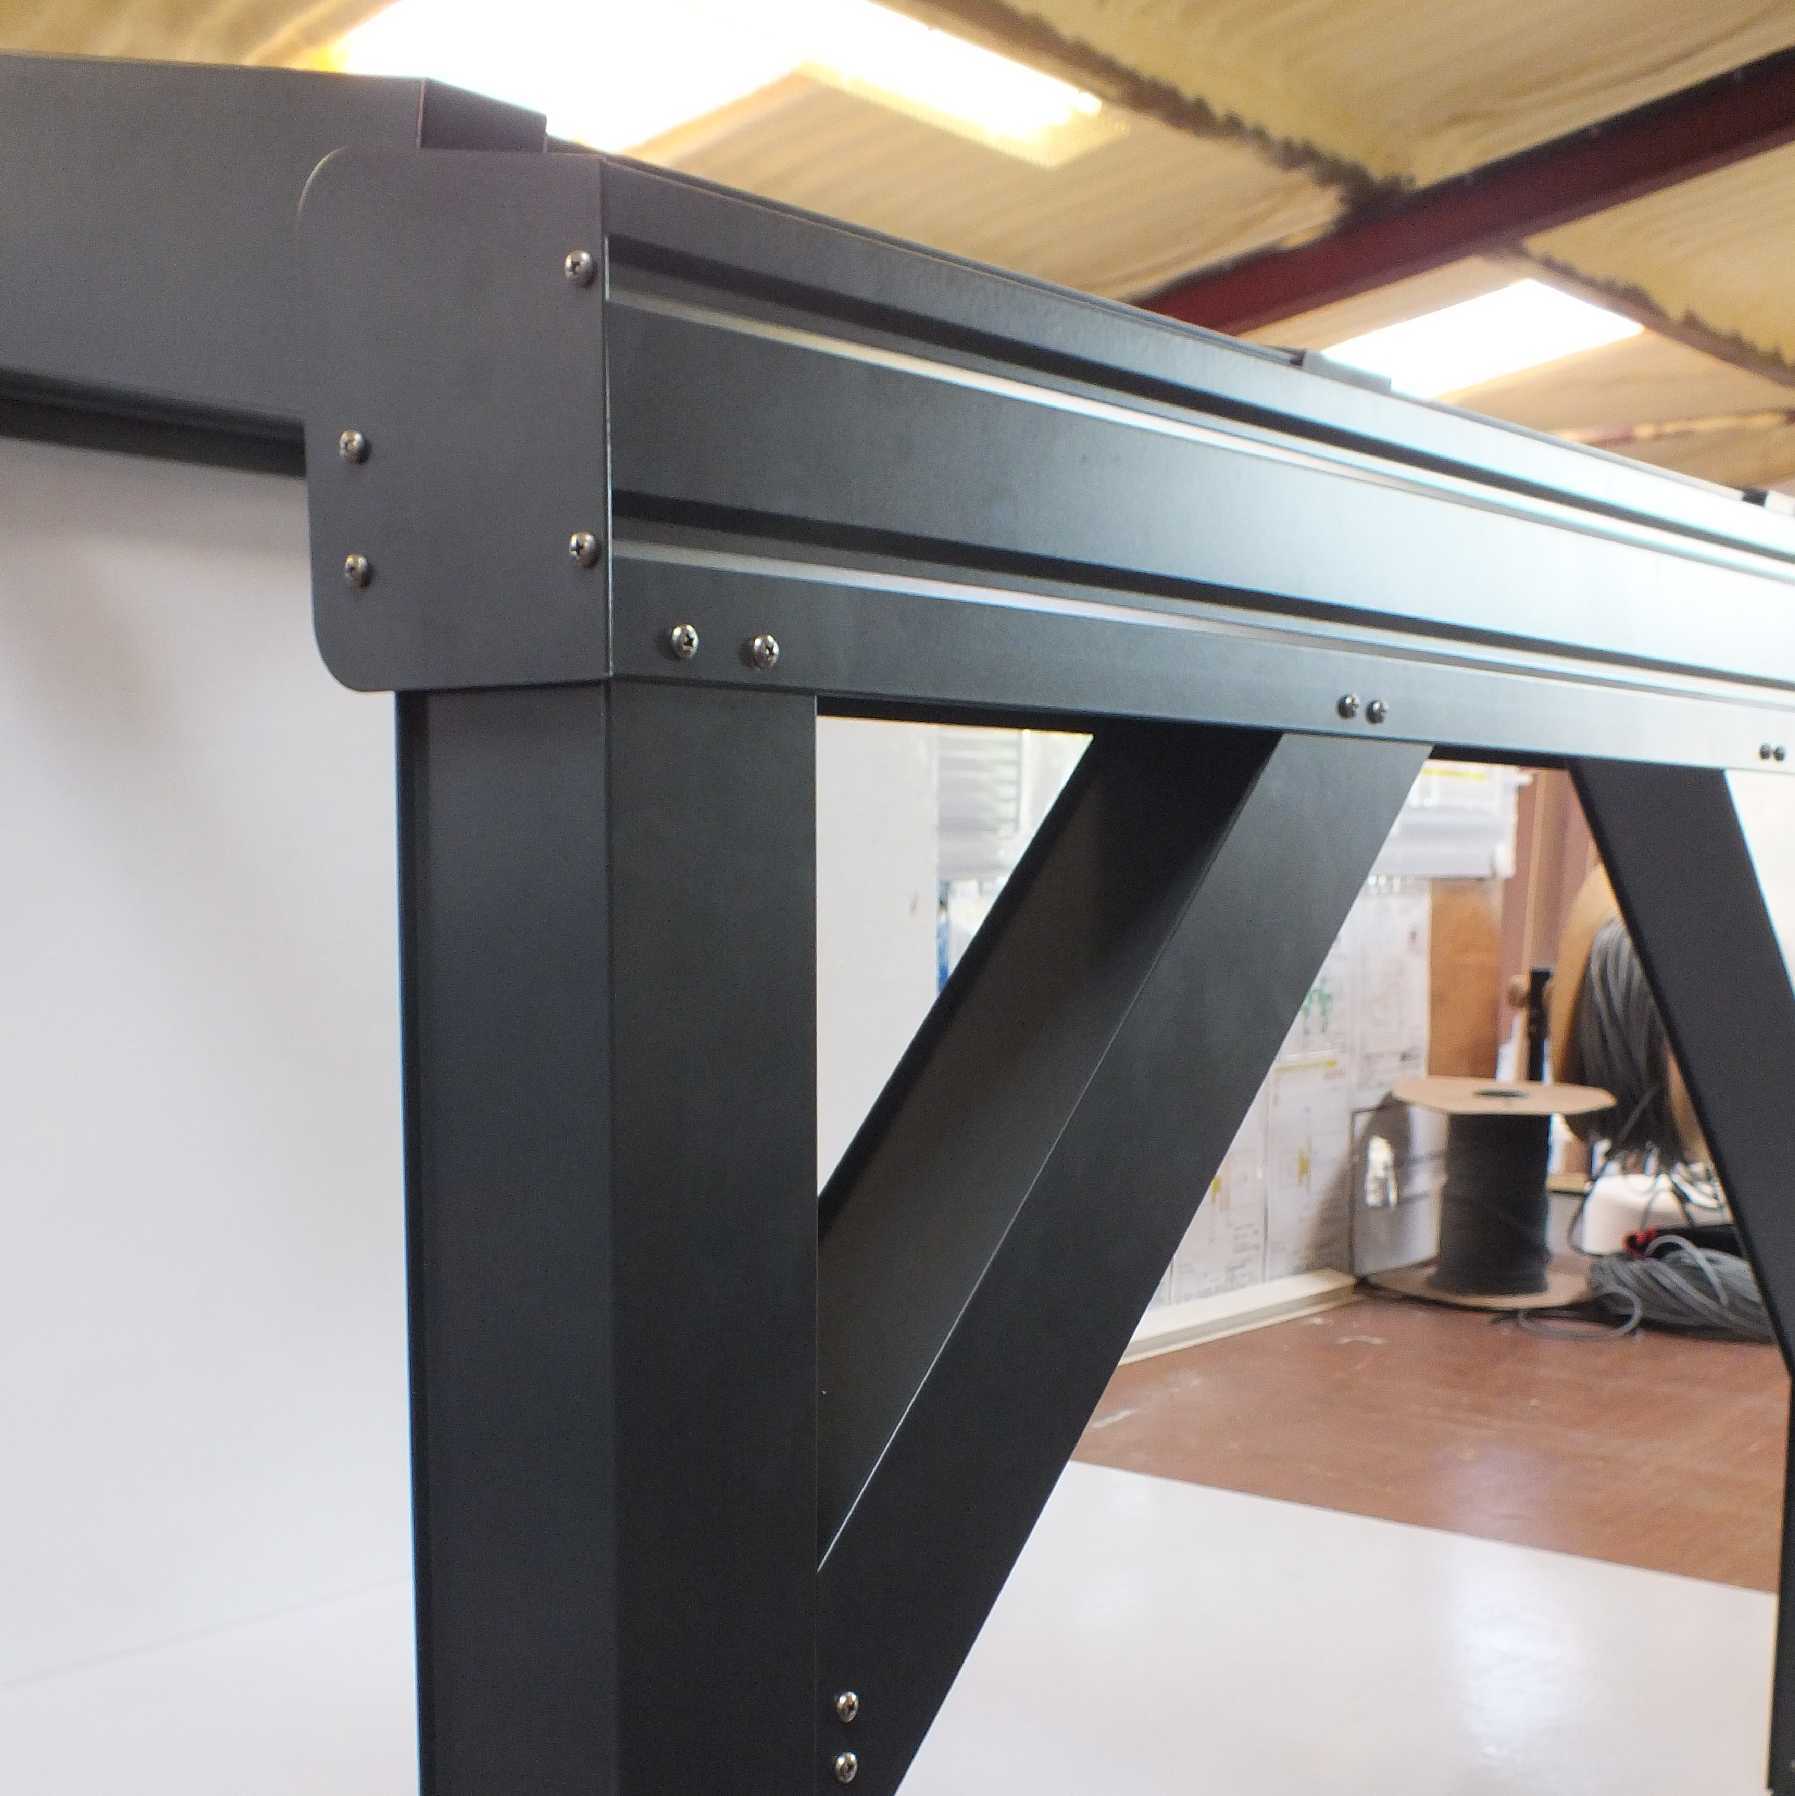 Omega Smart Lean-To Canopy, Anthracite Grey, UNGLAZED for 6mm Glazing - 10.5m (W) x 2.5m (P), (5) Supporting Posts from Omega Build